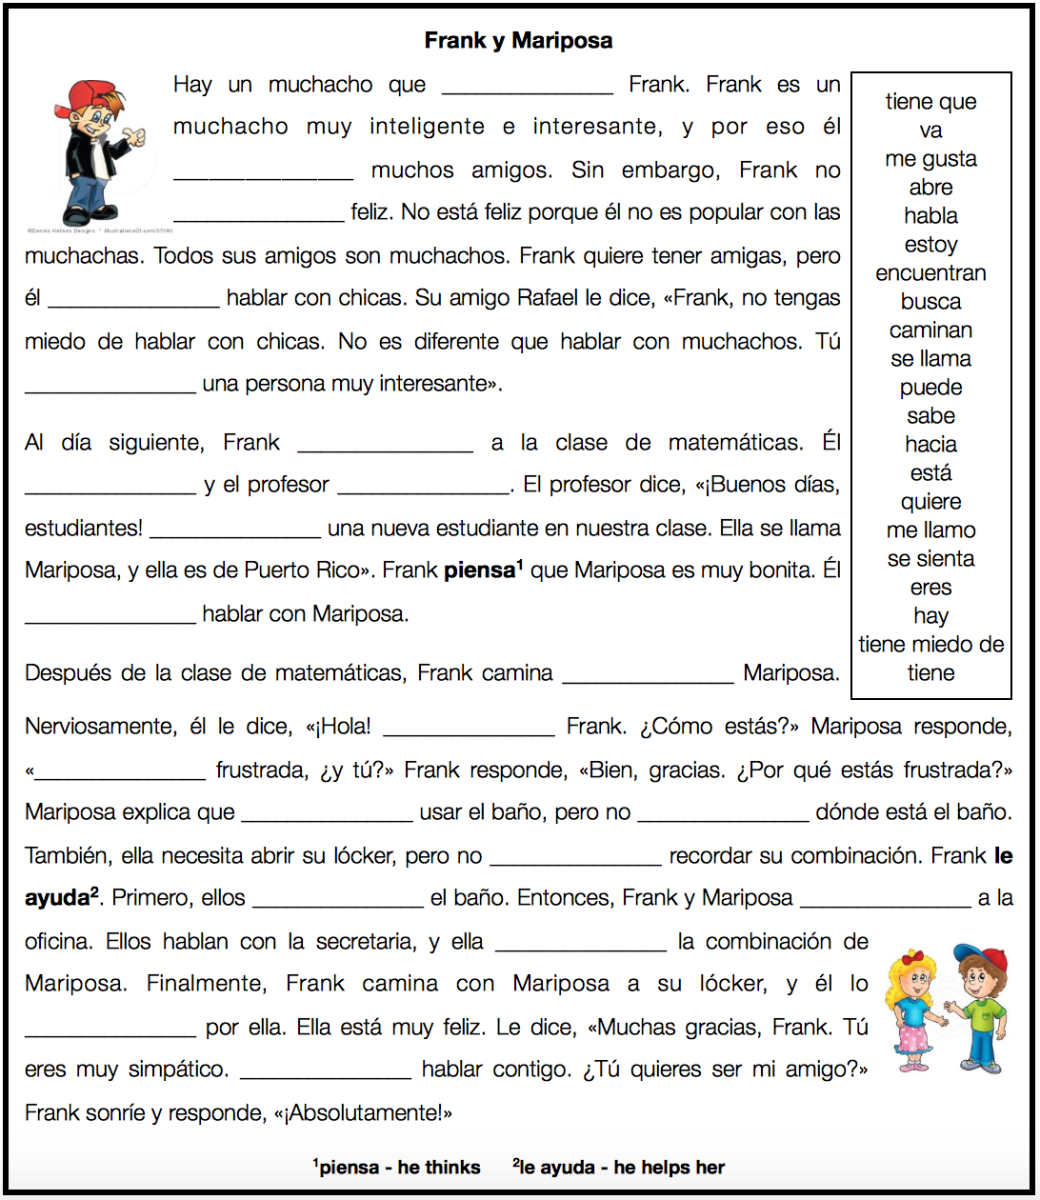 worksheet Spanish Reading Comprehension Worksheets 1a midterm reading comprehension spanish and banks worksheetsspanish